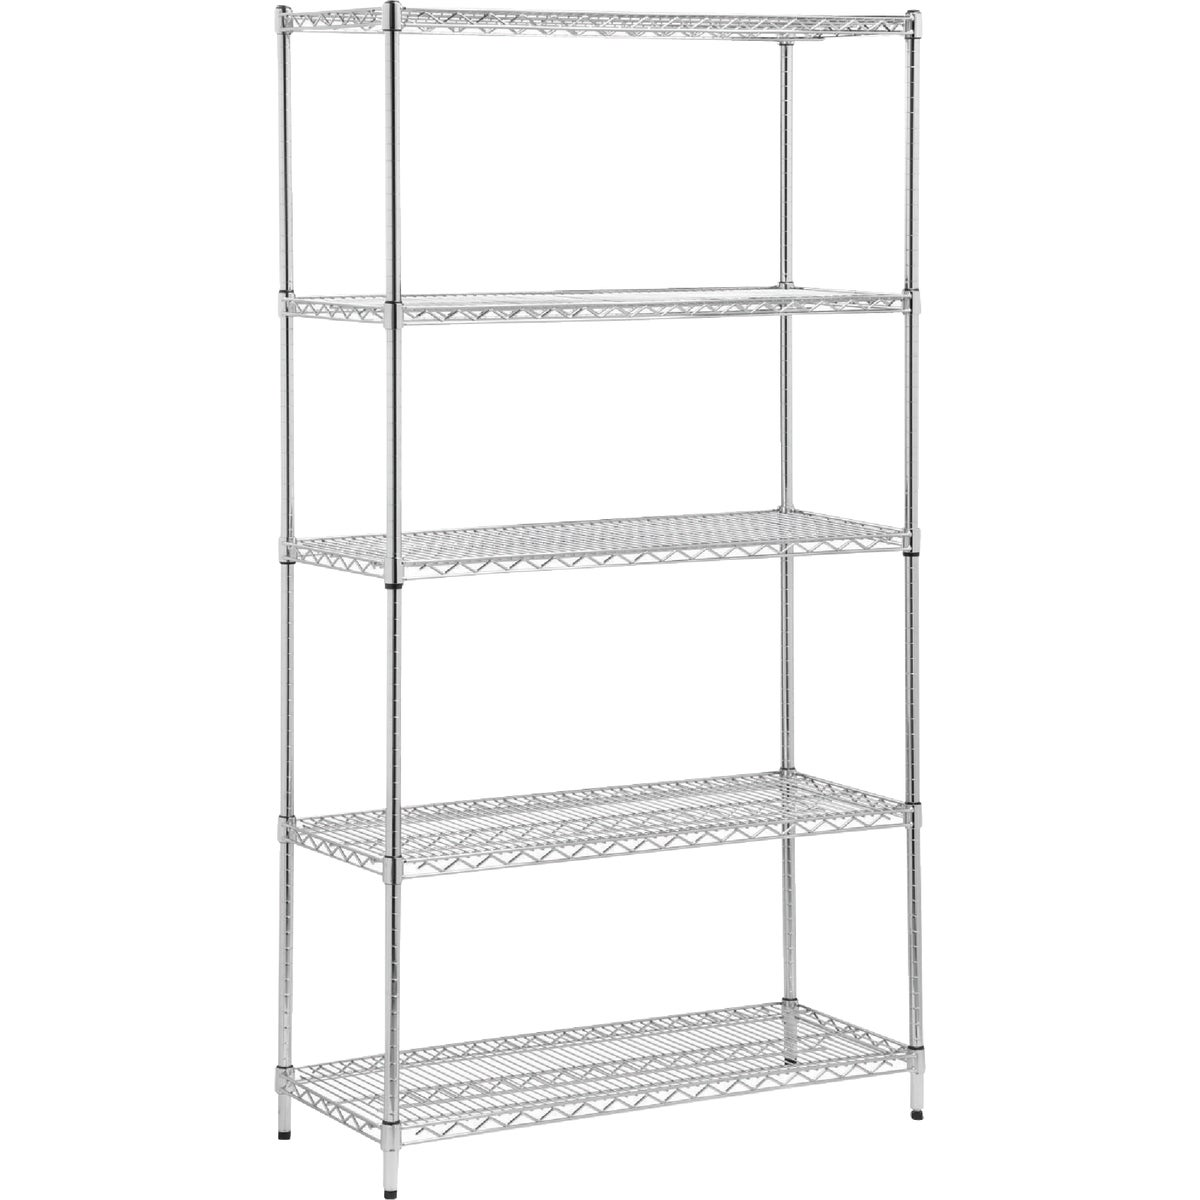 CHR 5 TIER HVY DTY SHELF